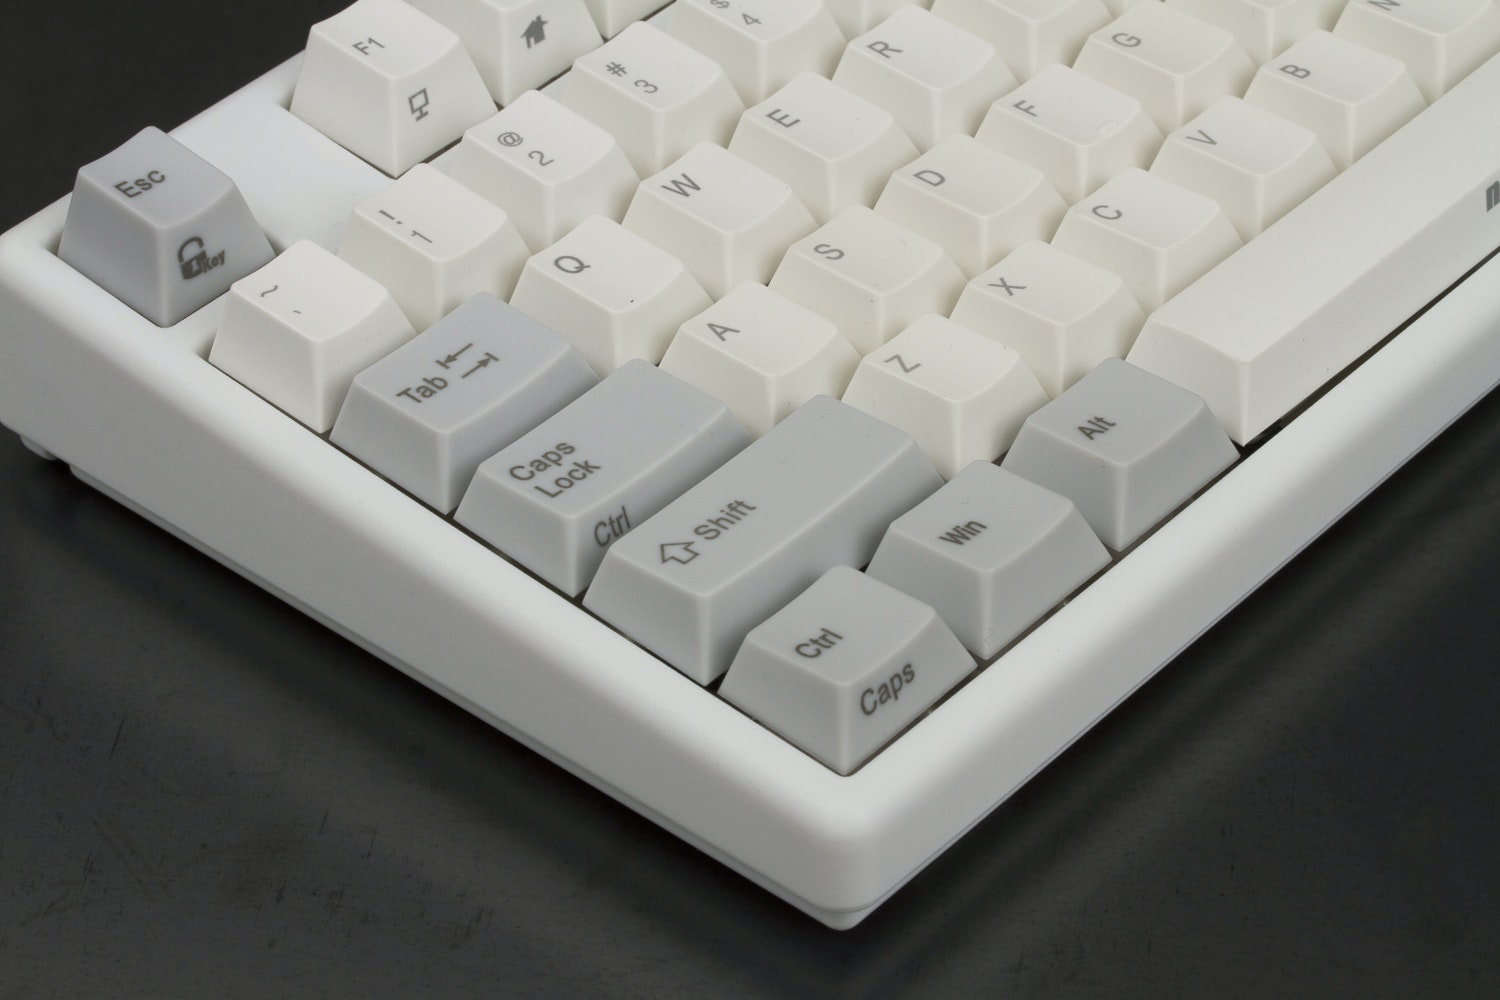 Noppoo Electro Capacitive Keyboard